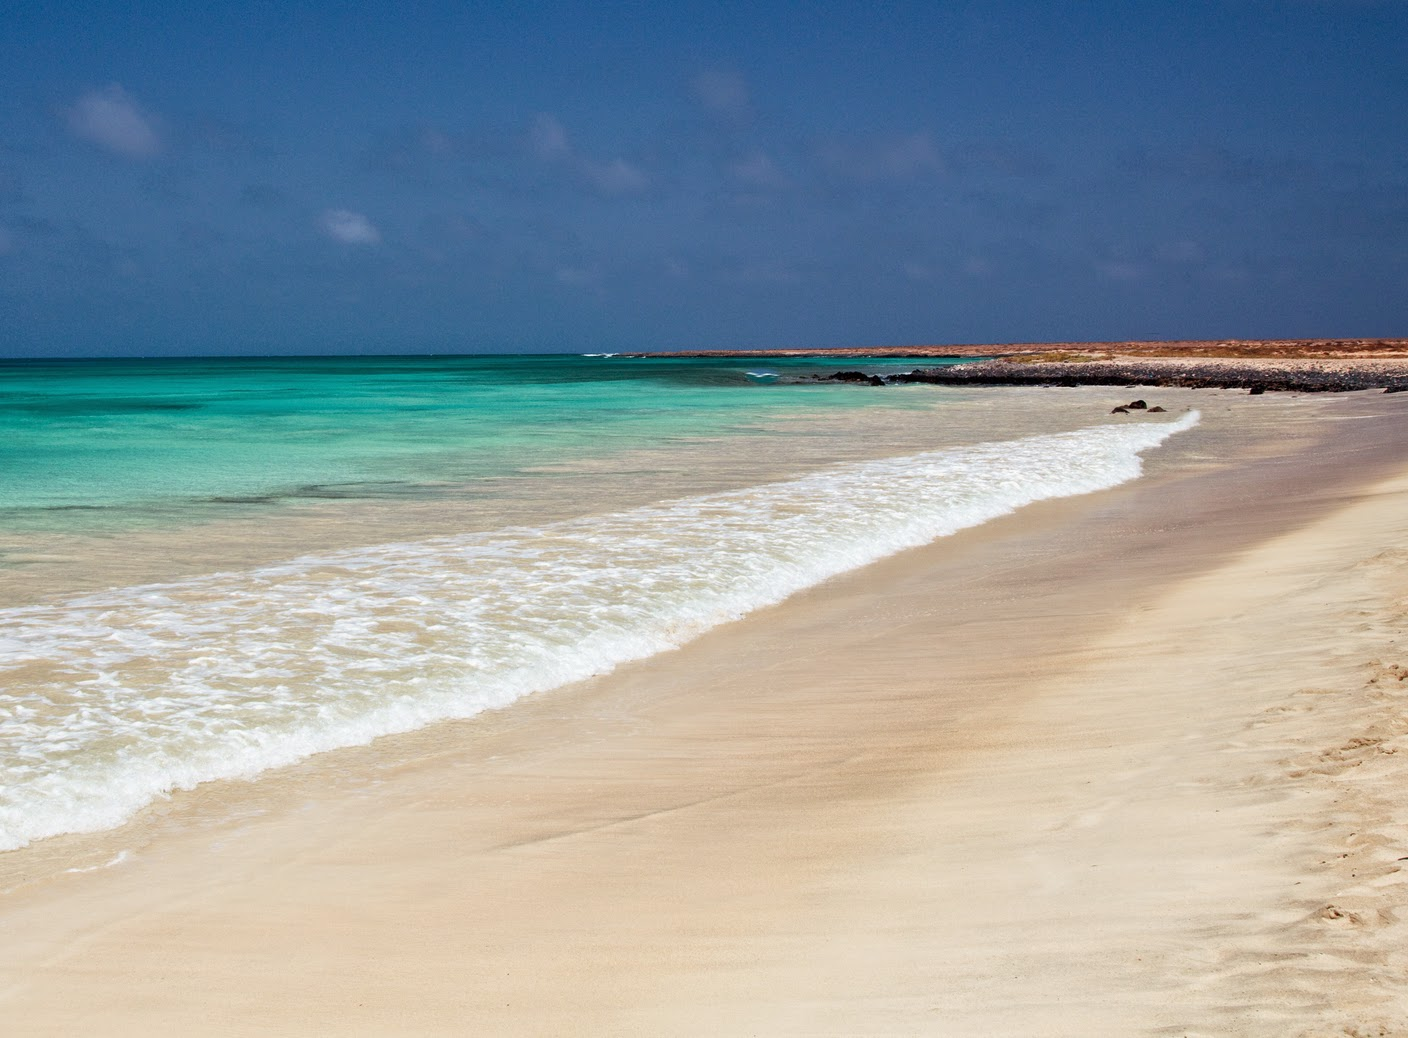 Magnificent beaches are waiting for you in Cabo Verde at Easter